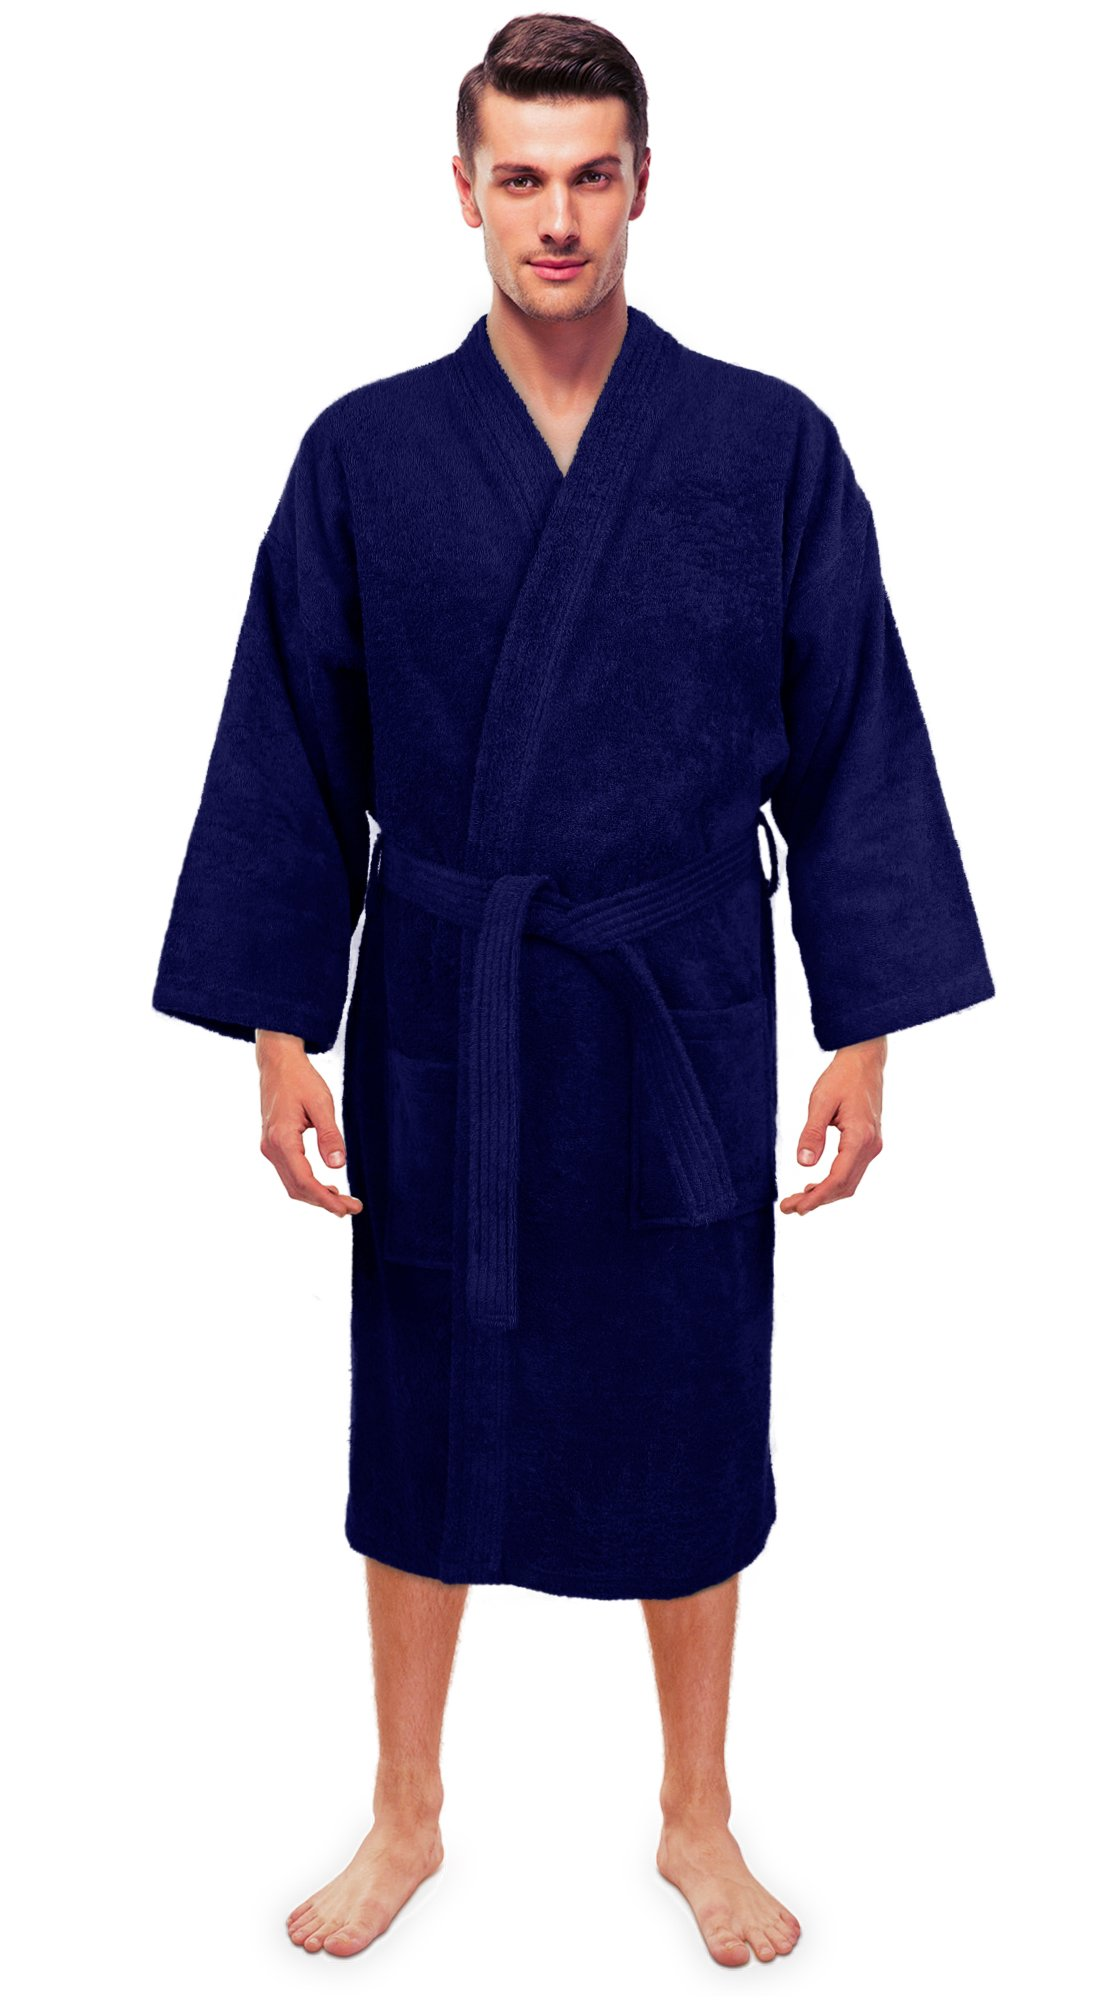 Turkuoise Men's Terry Cloth Robe 100% Premium Turkish Cotton Terry Kimono Collar